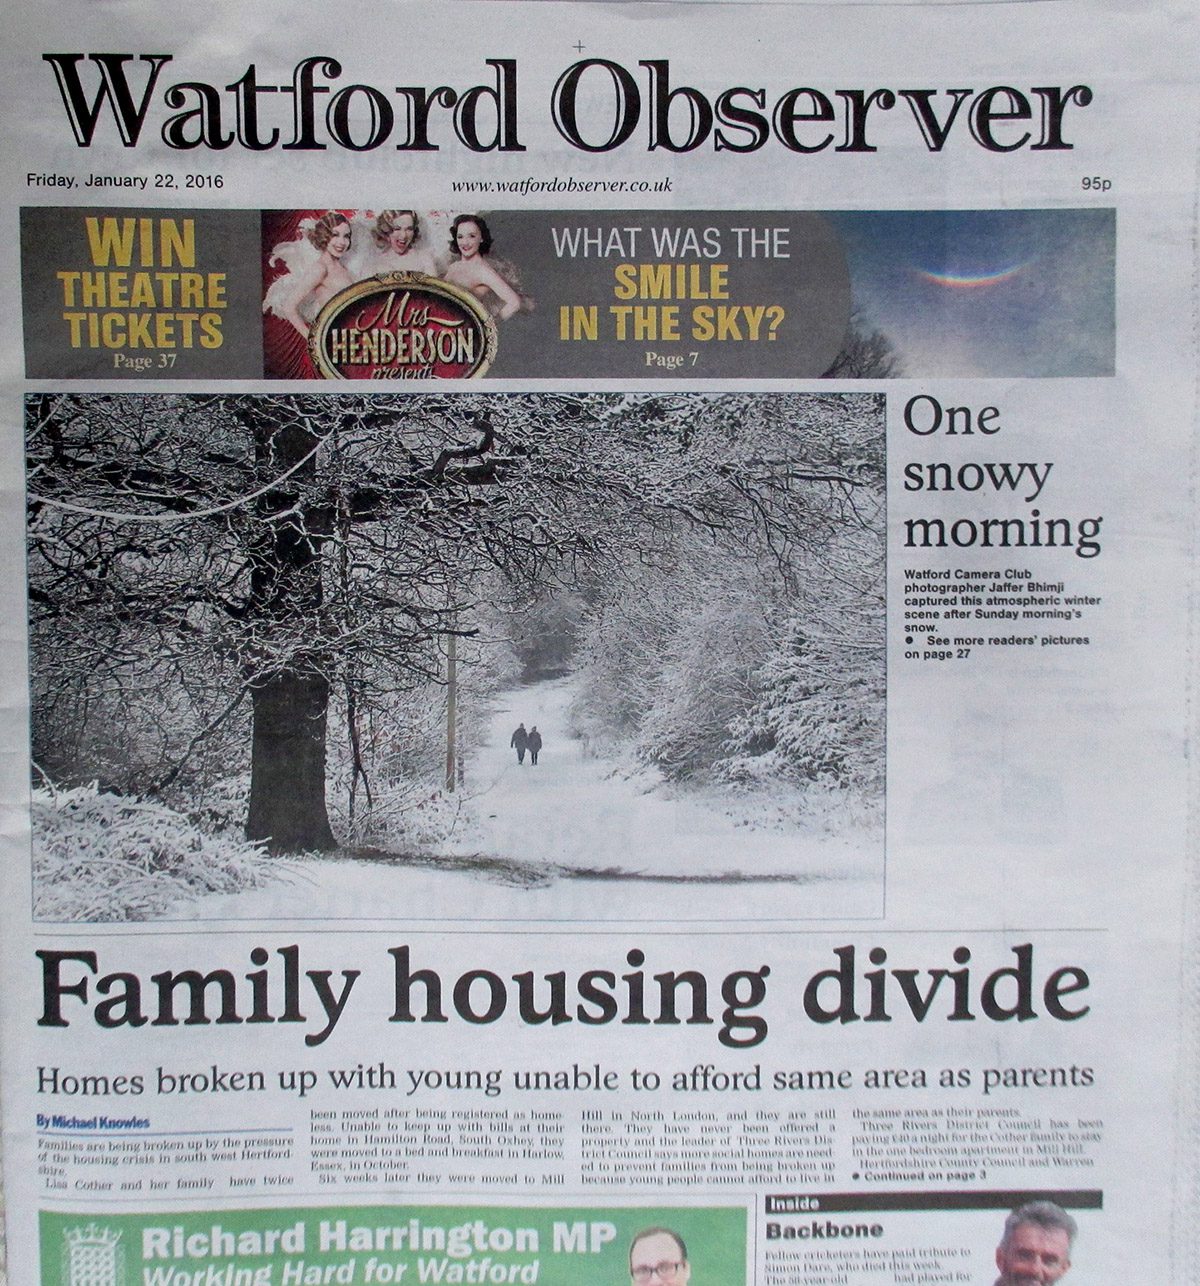 Jaffer Bhimji makes the Watford Observer front page yet again